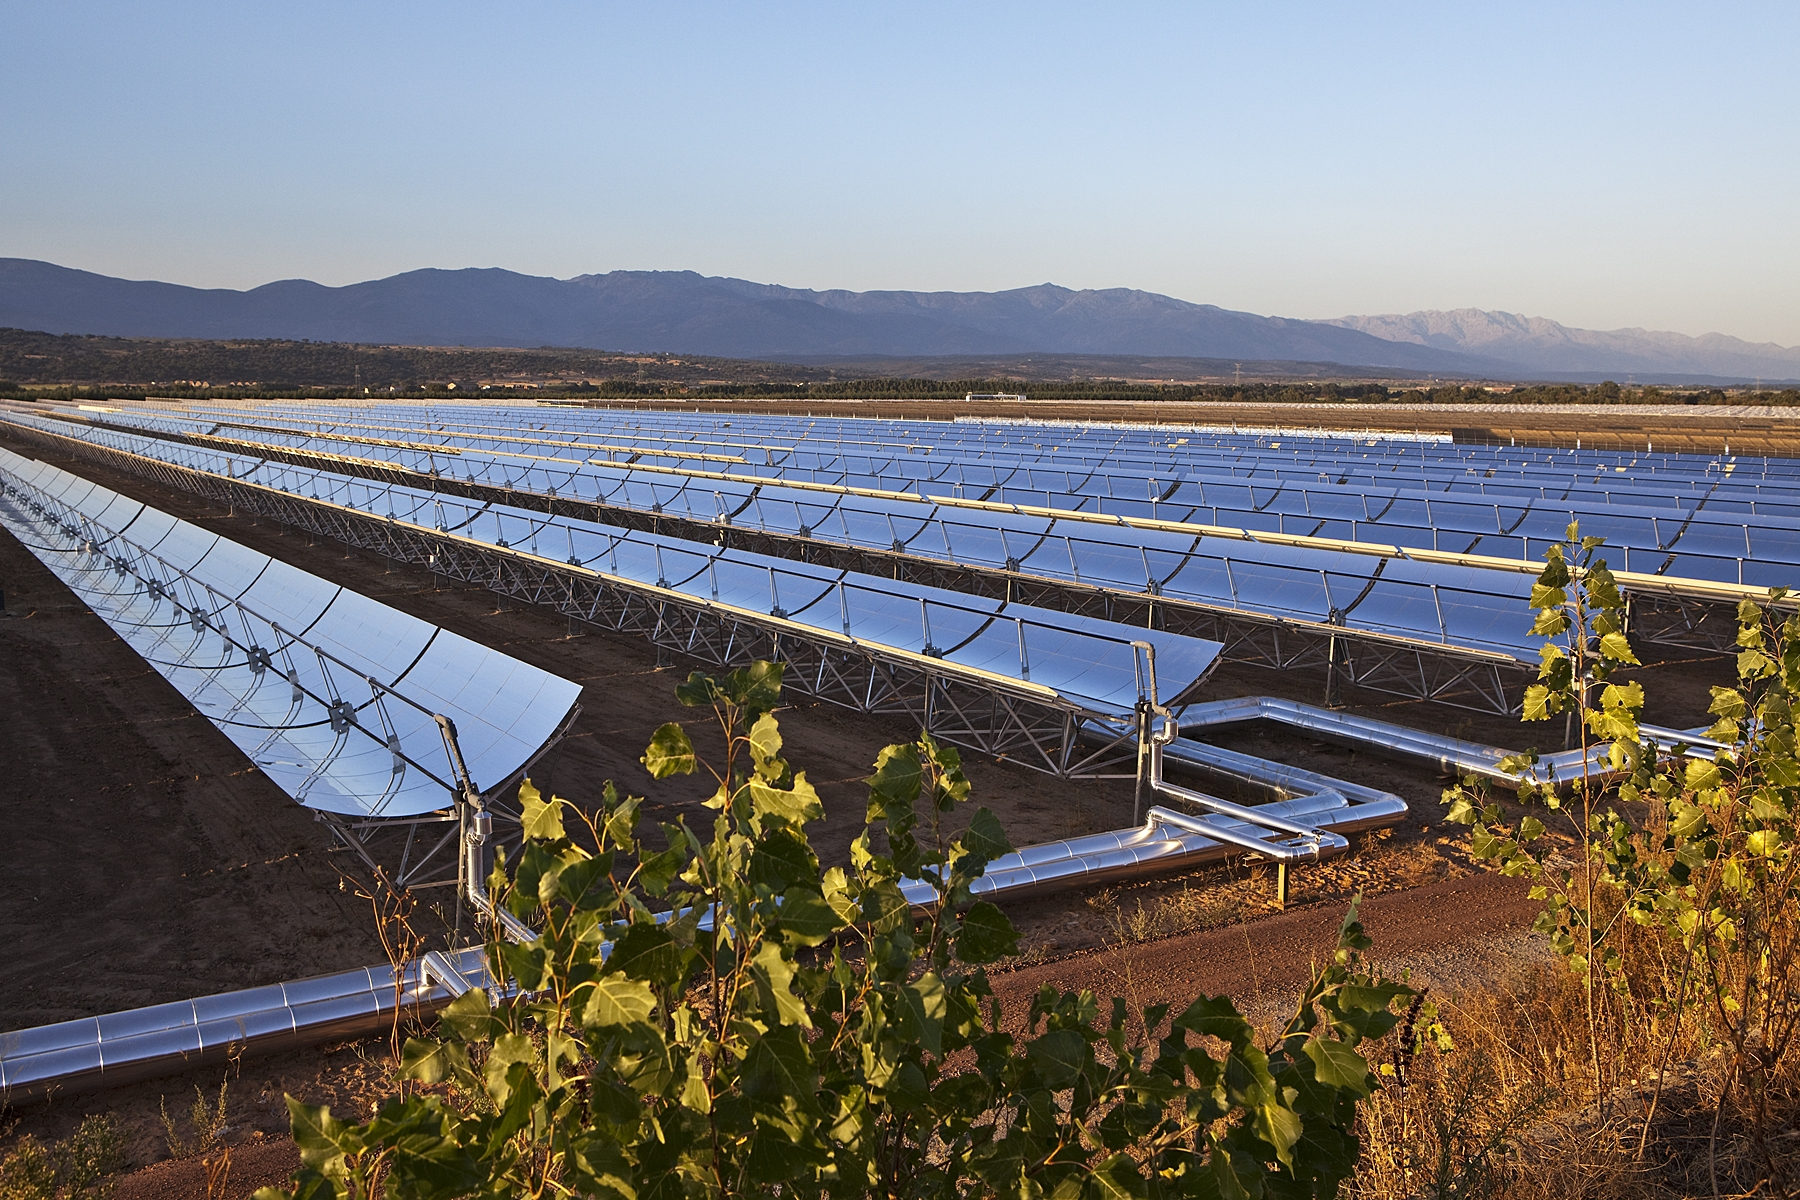 https://www.evwind.com/wp-content/uploads/2012/09/Acciona-termosolar.jpg